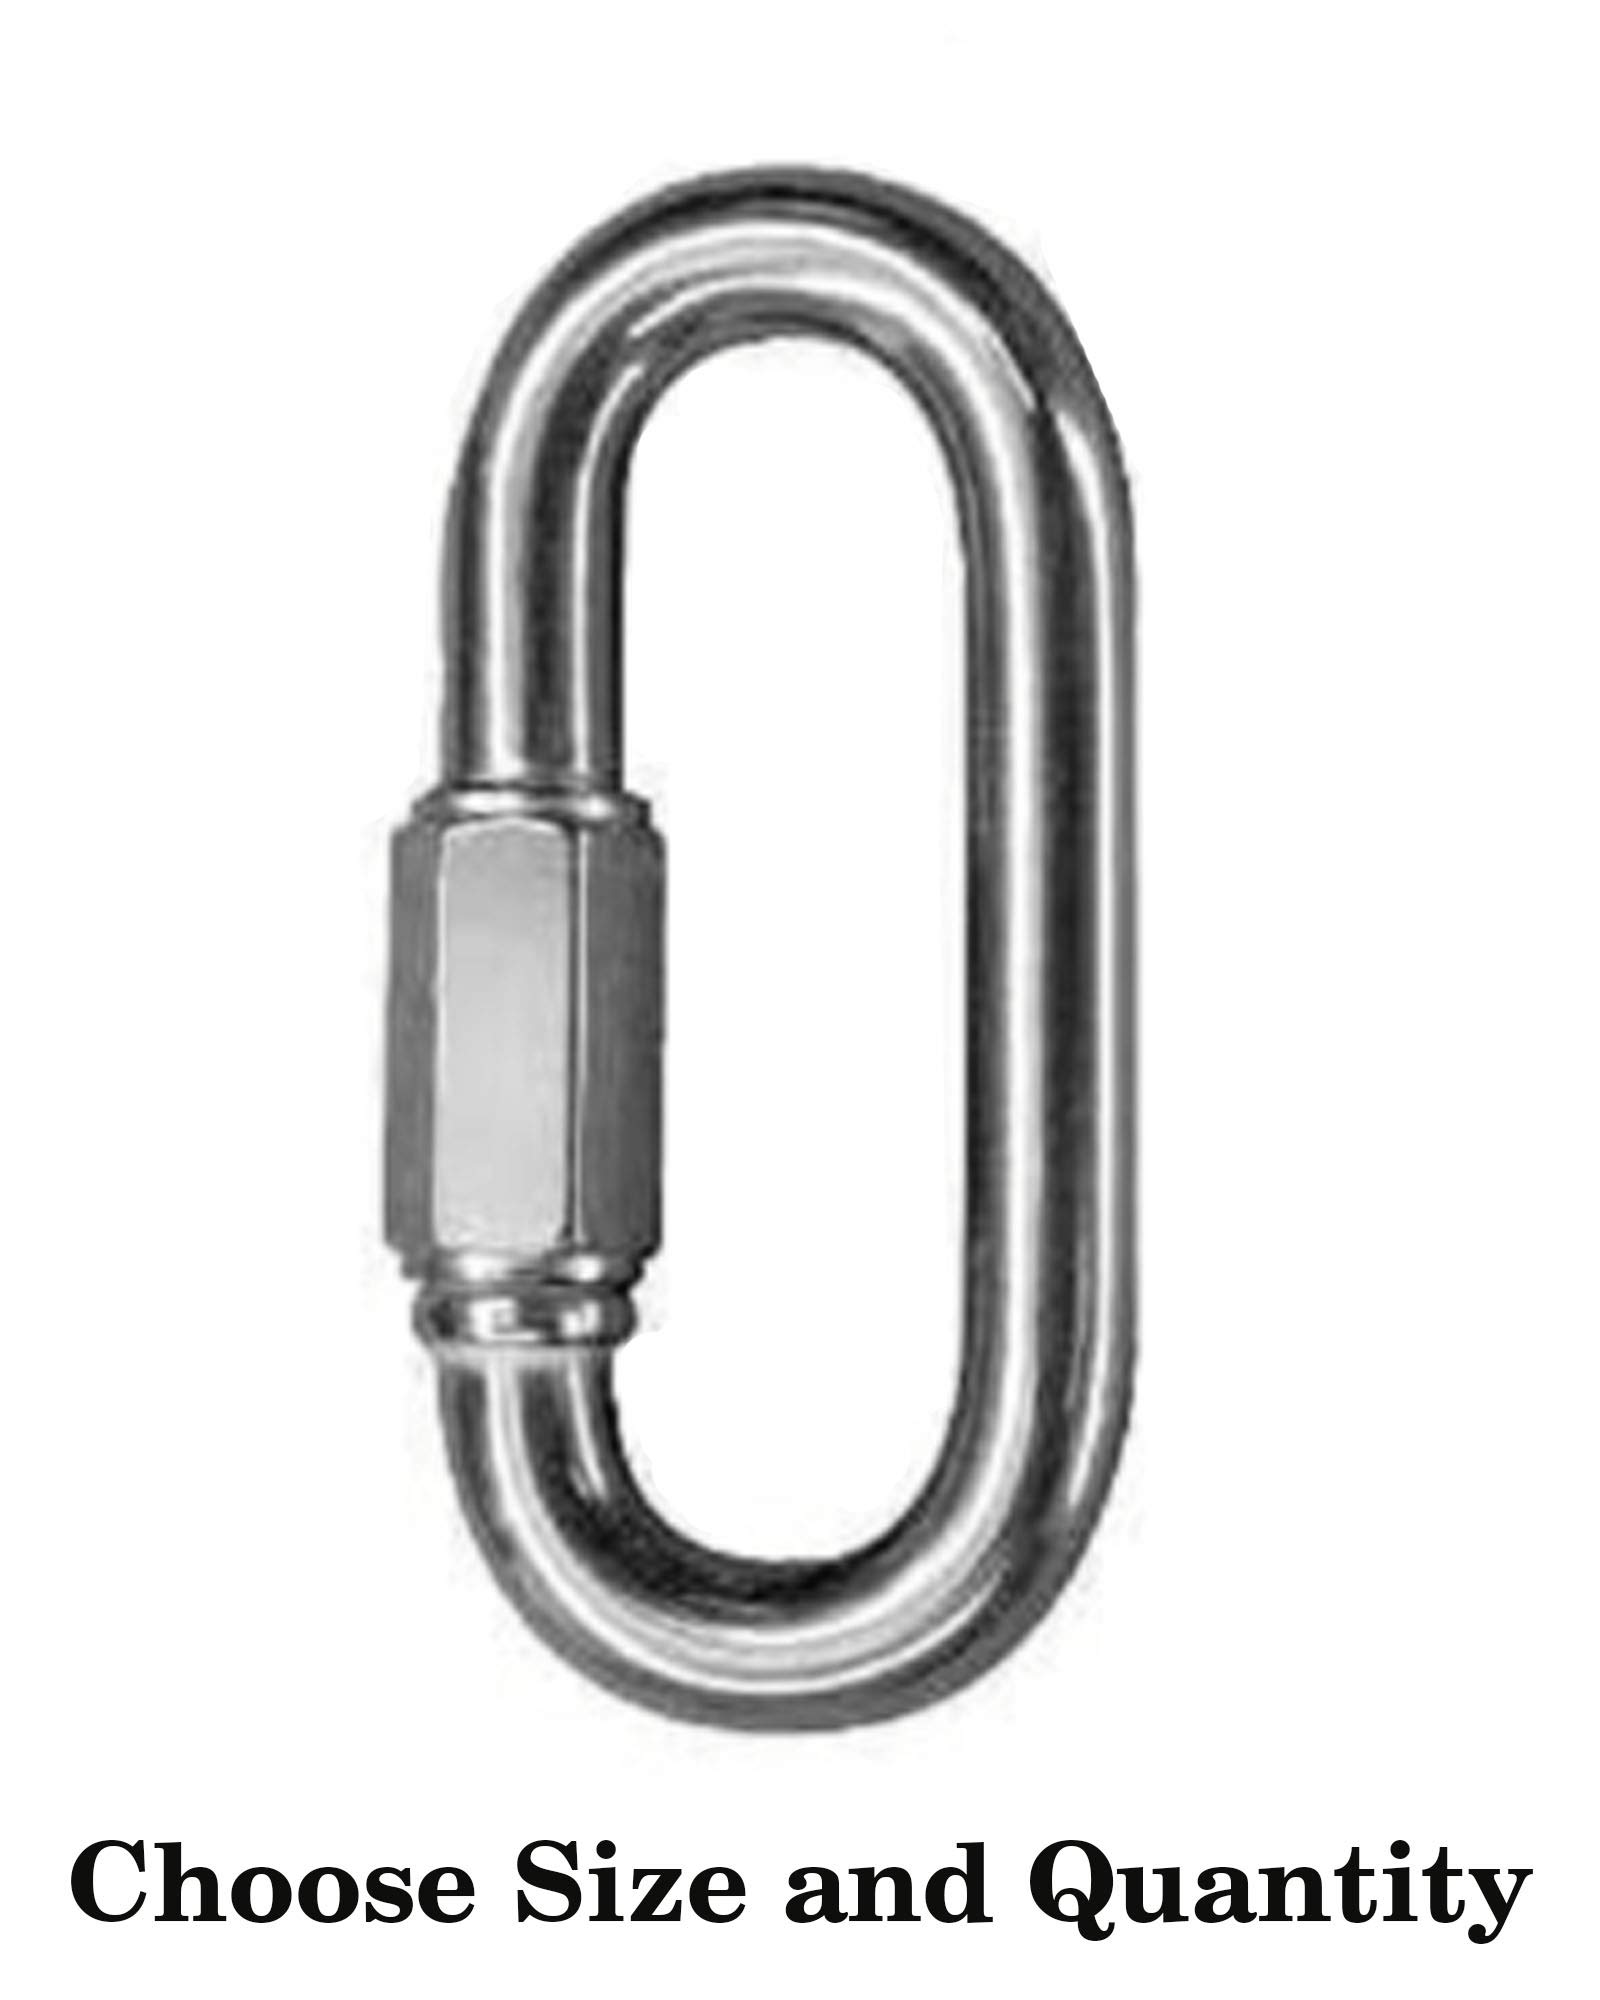 D Shape Locking Carabiner - Zinc Plated Quick Link Camp Oval Quick Link Chain Connector Screw Lock Carabiner Key Ring Oval Locking Carabiner Screw Lock Carabiner (250, 5/16'')